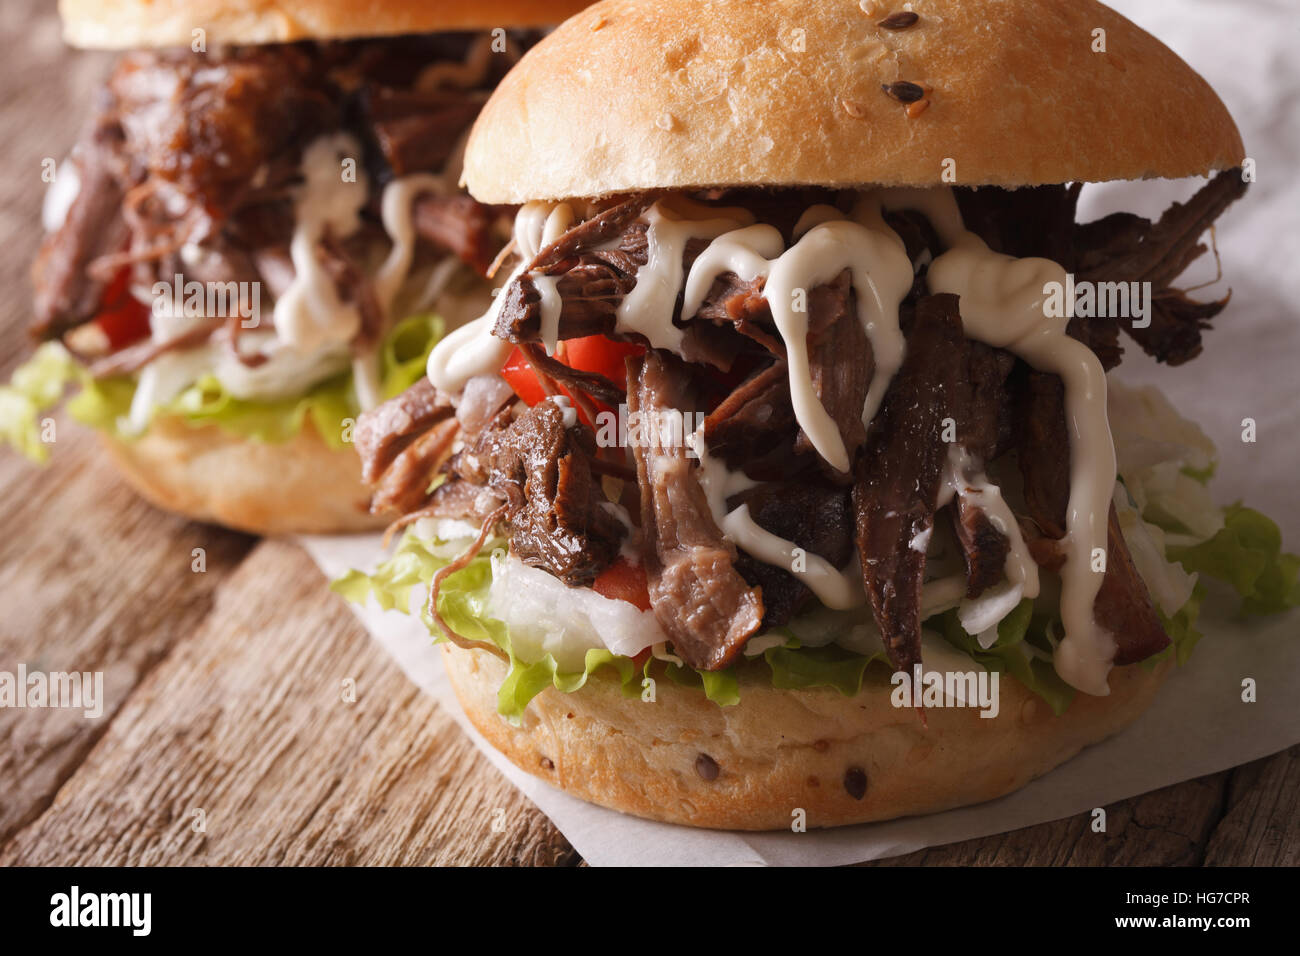 delicious Pulled pork sandwich with slaw and sauce close-up on the table. Horizontal - Stock Image